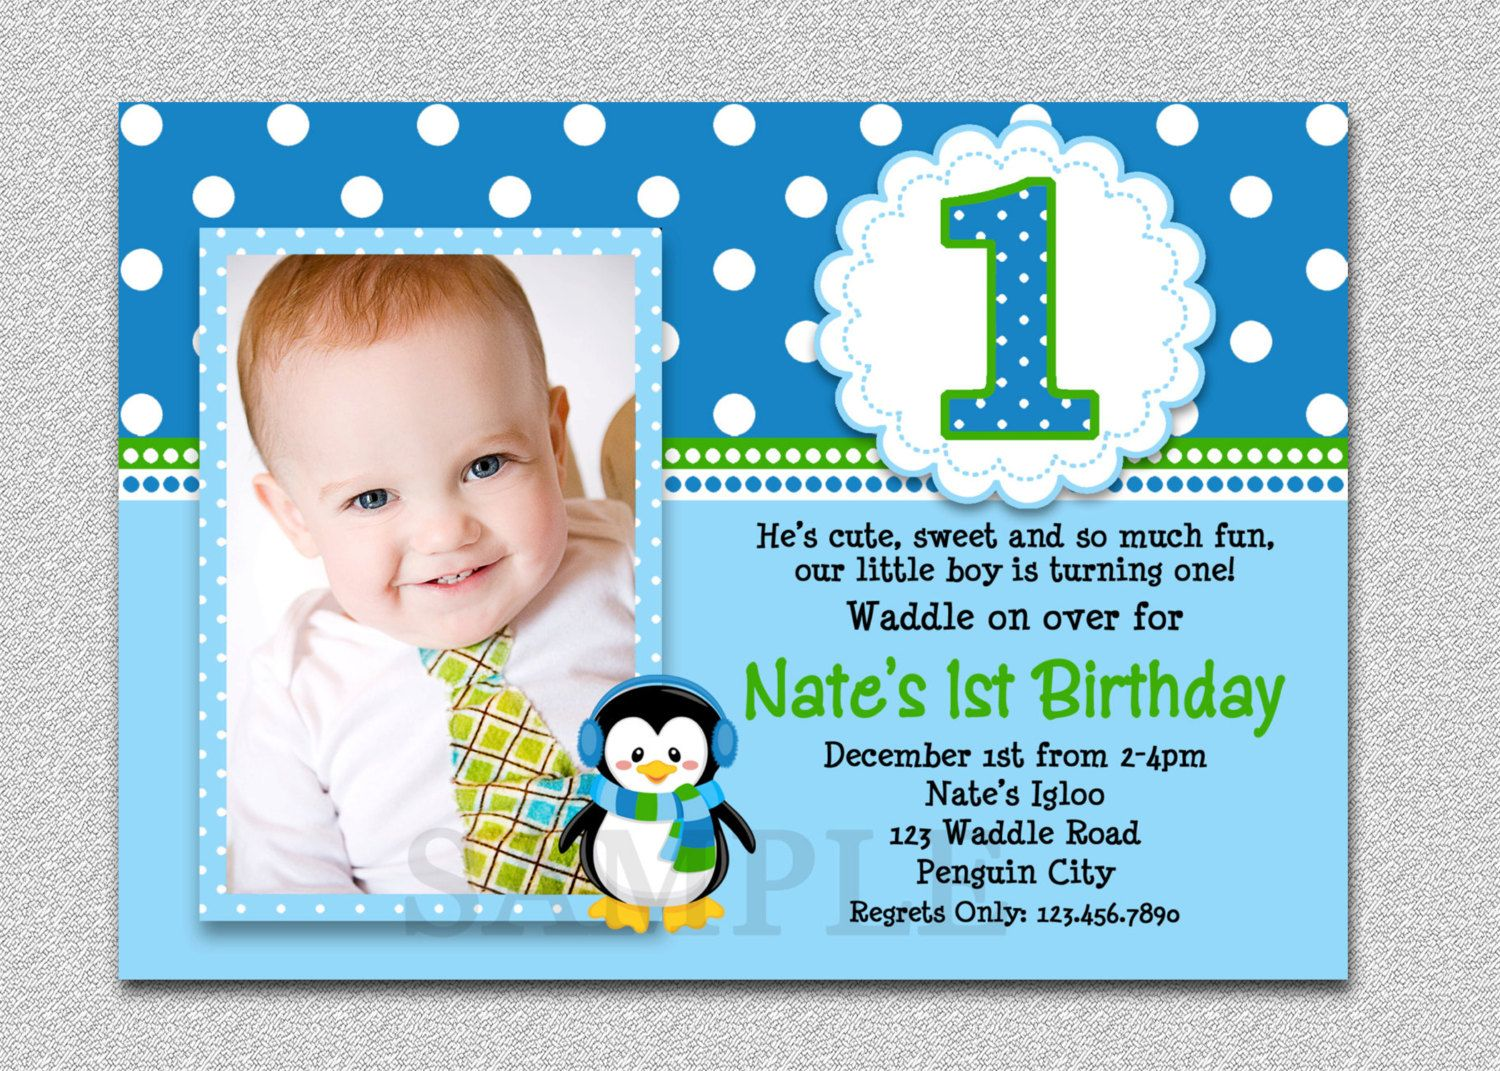 St Birthday Invitations Invitation Templates Free Printable - 1st birthday invitation wording by a baby